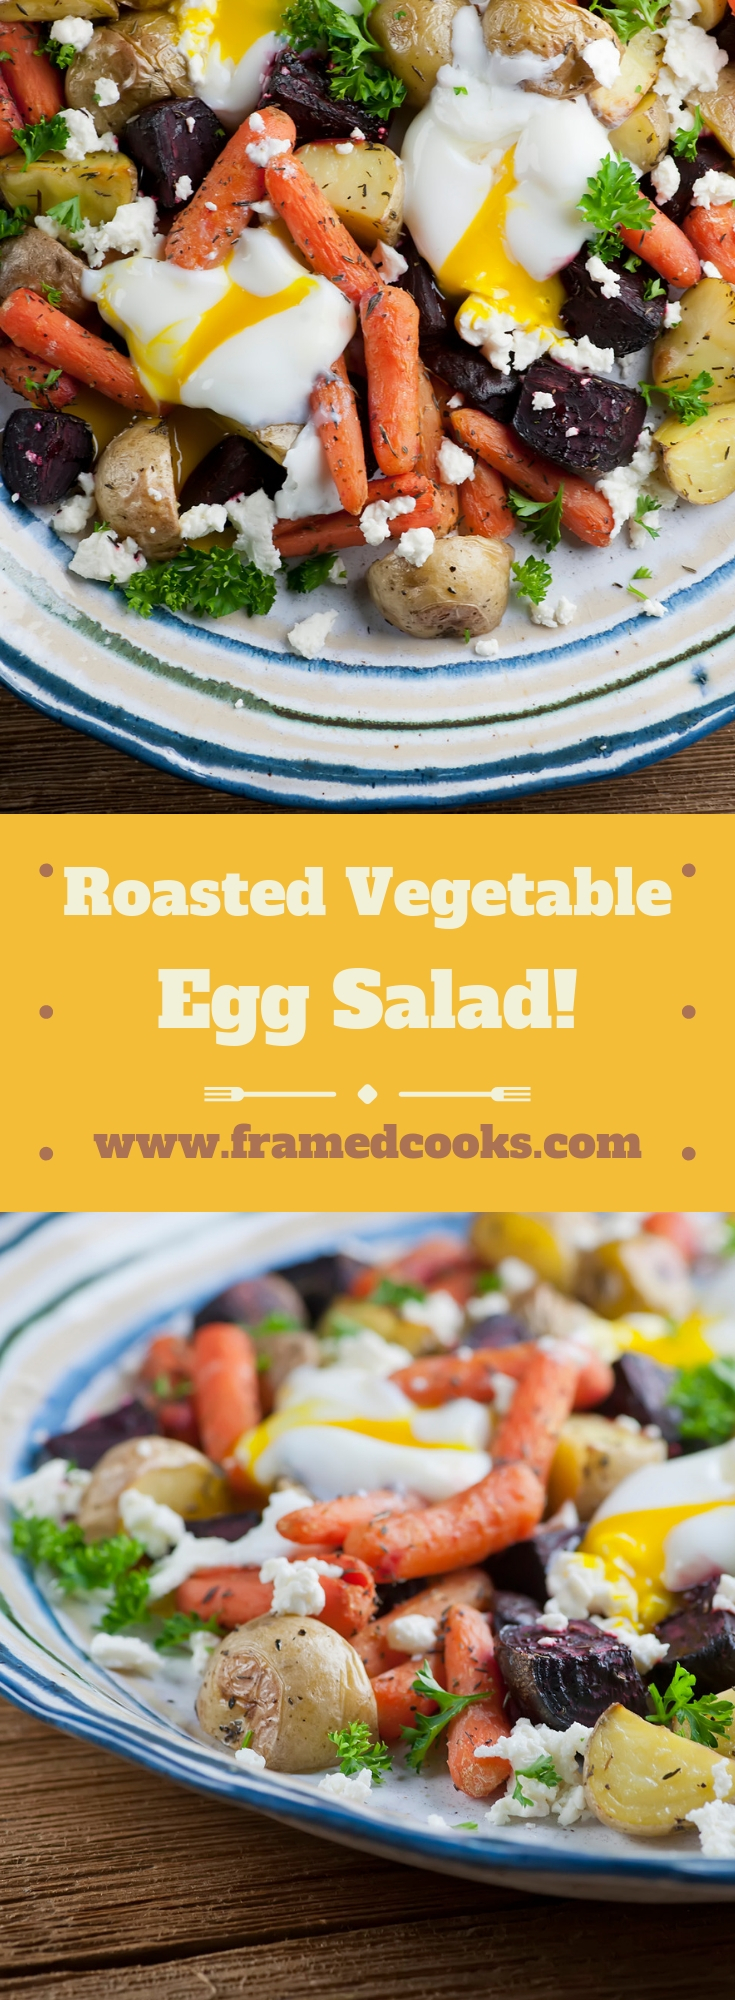 This easy recipe for roasted vegetable egg salad is a hearty variation on this lunchtime favorite, adding warm and healthy roasted veggies!